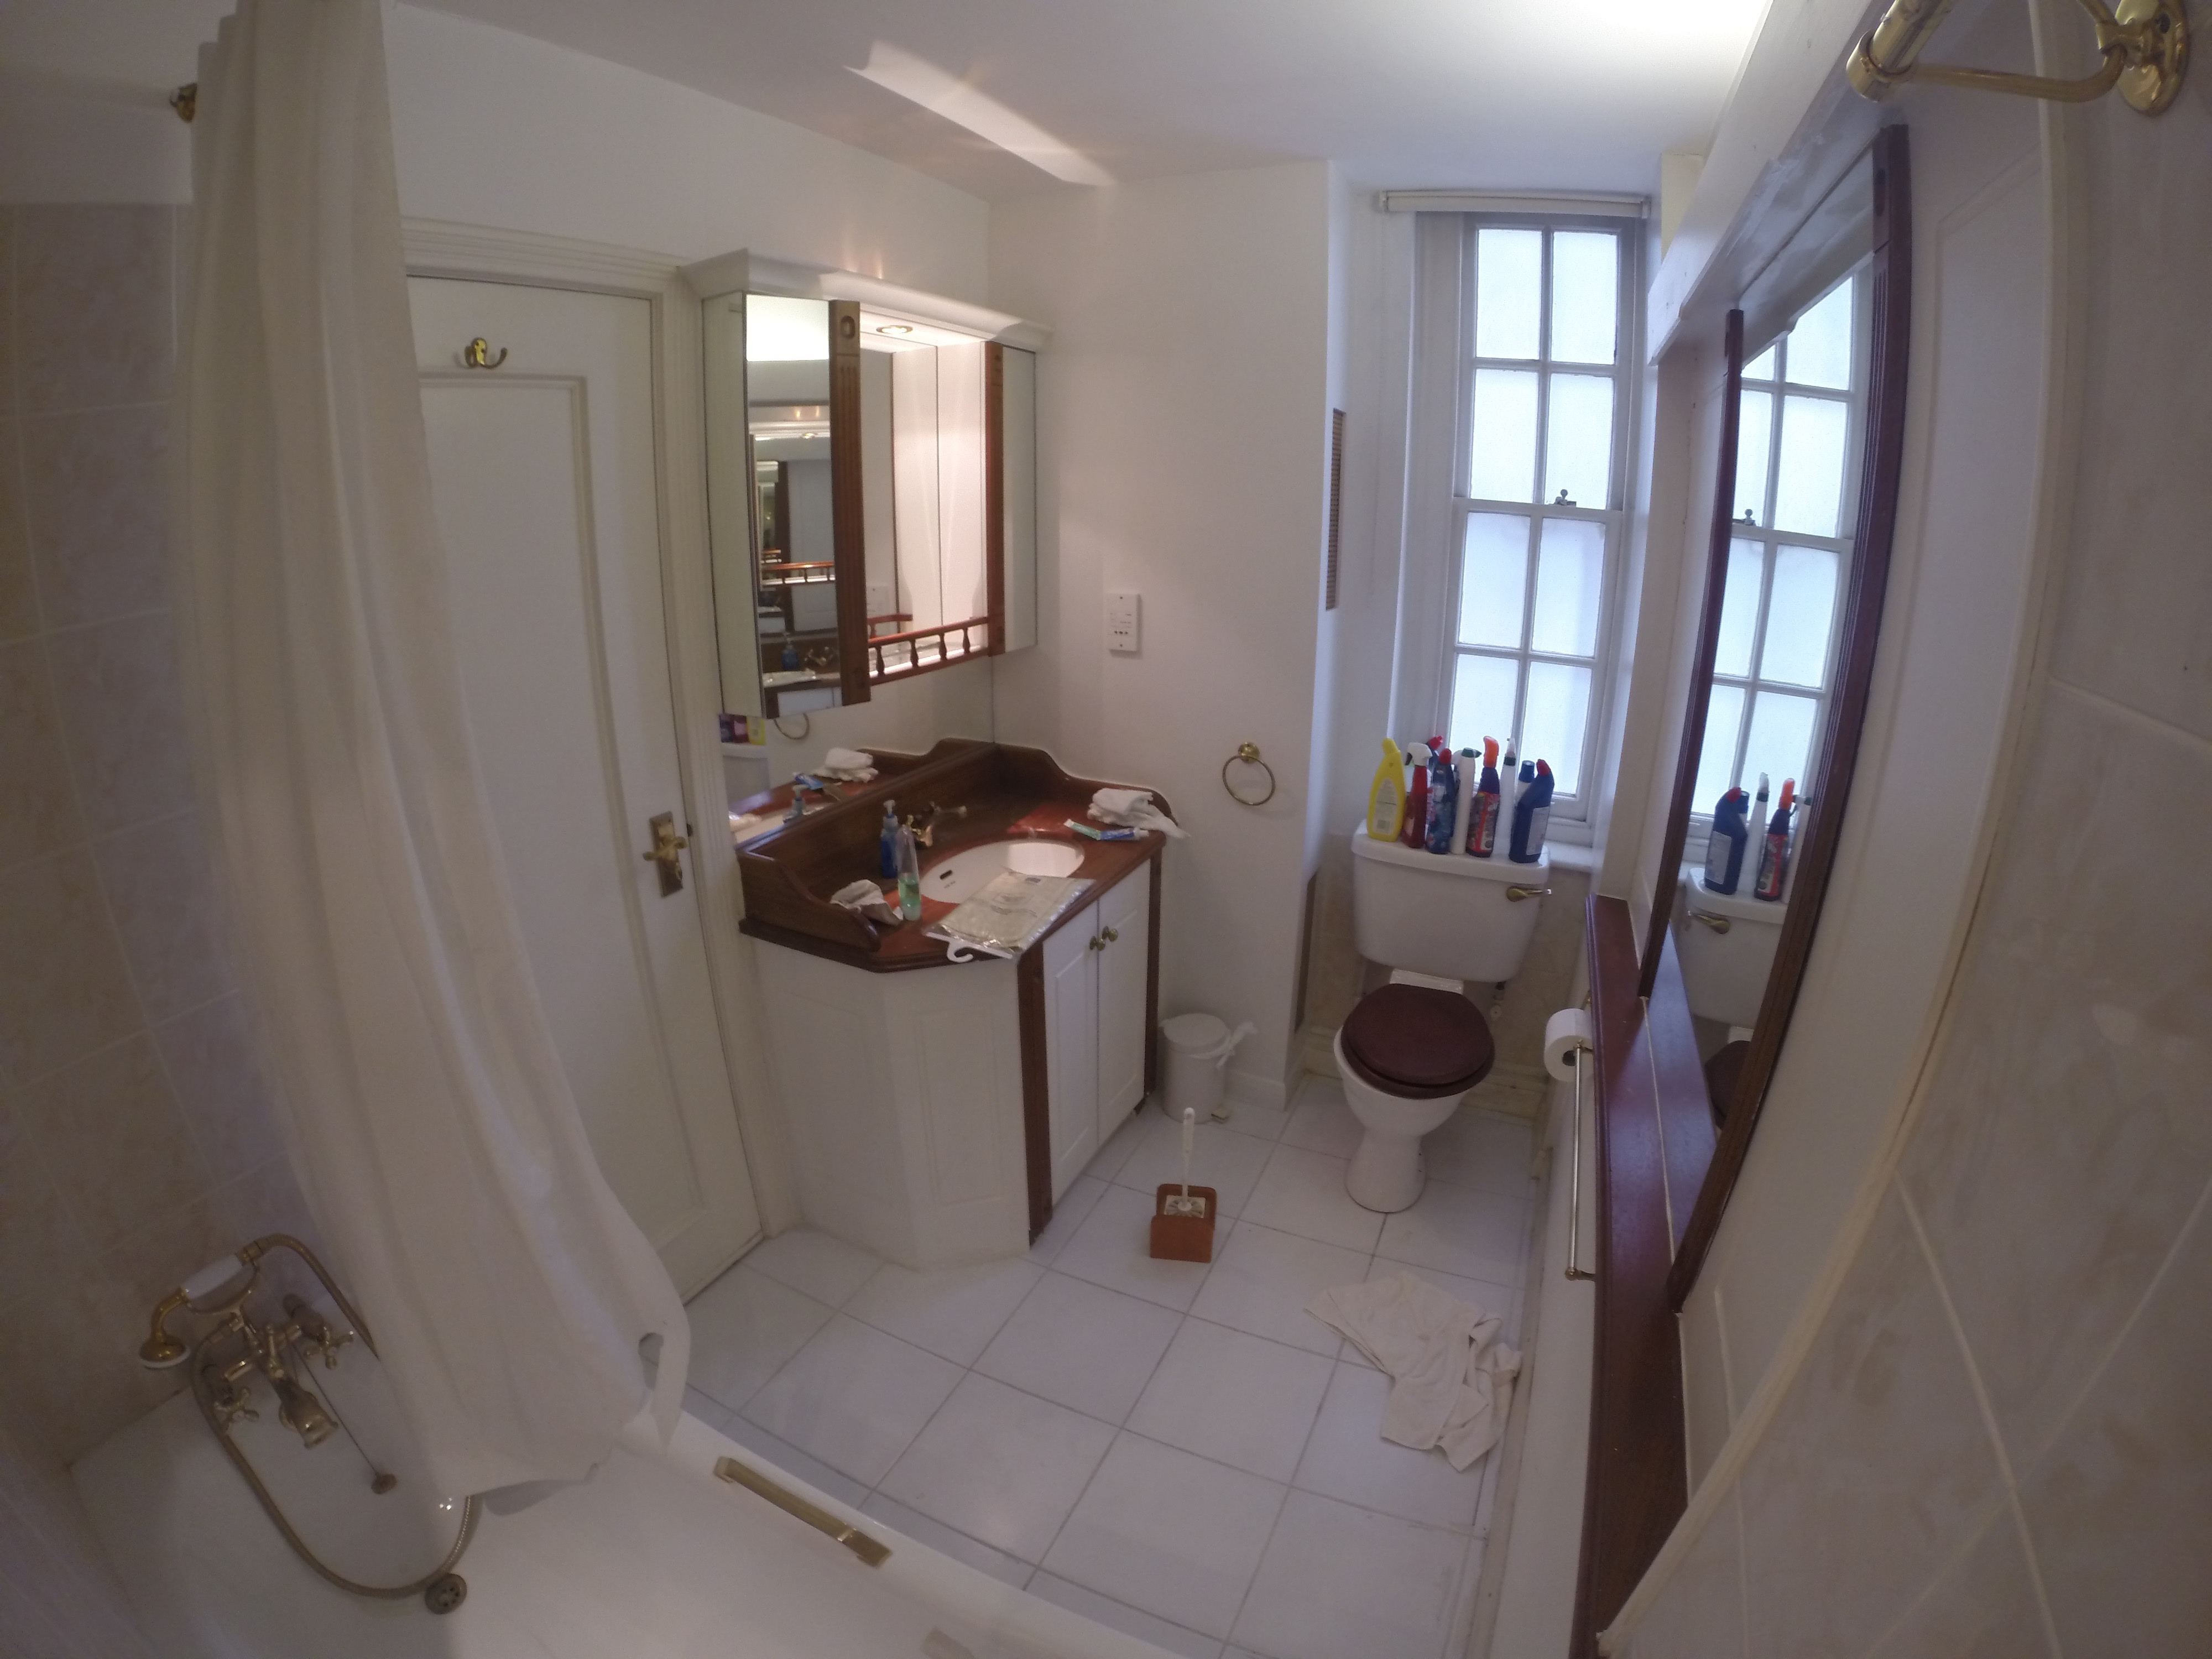 Wet room at High Street Kensington (Before)